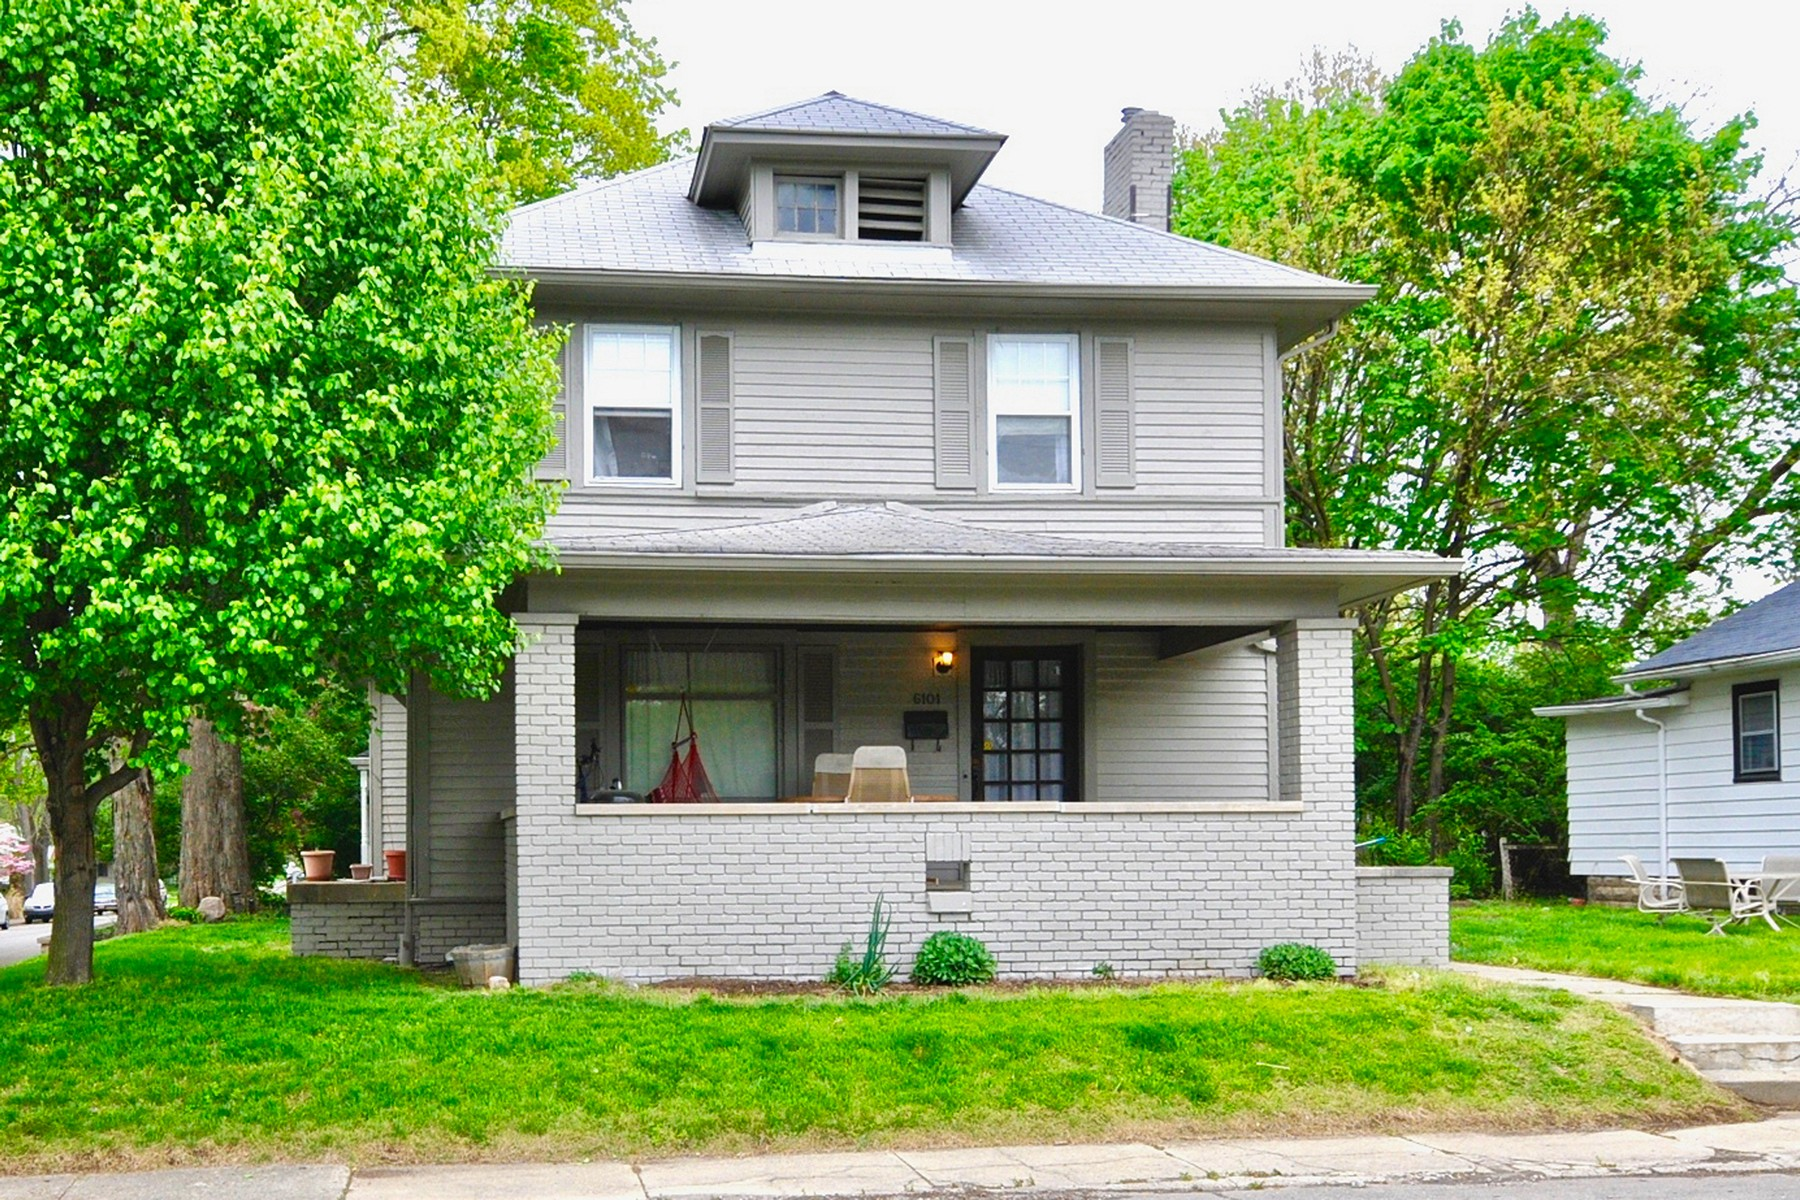 Single Family Home for Sale at Very Spacious Broad Ripple Home 6101 Broadway Street Indianapolis, Indiana 46220 United States